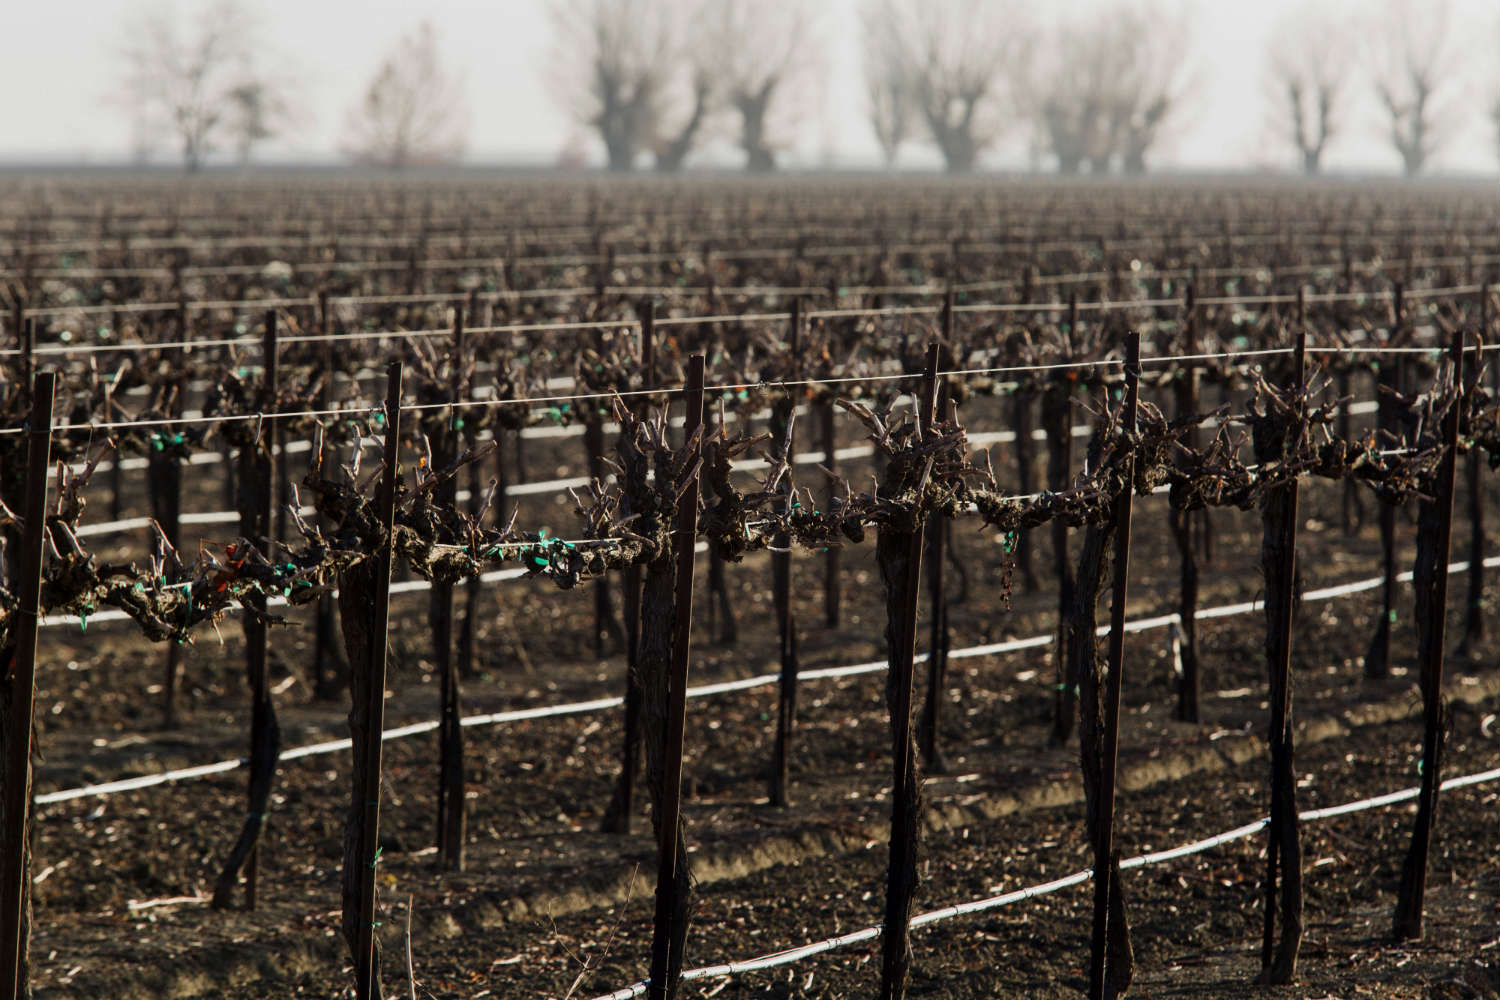 California's farms have been hard hit by the drought